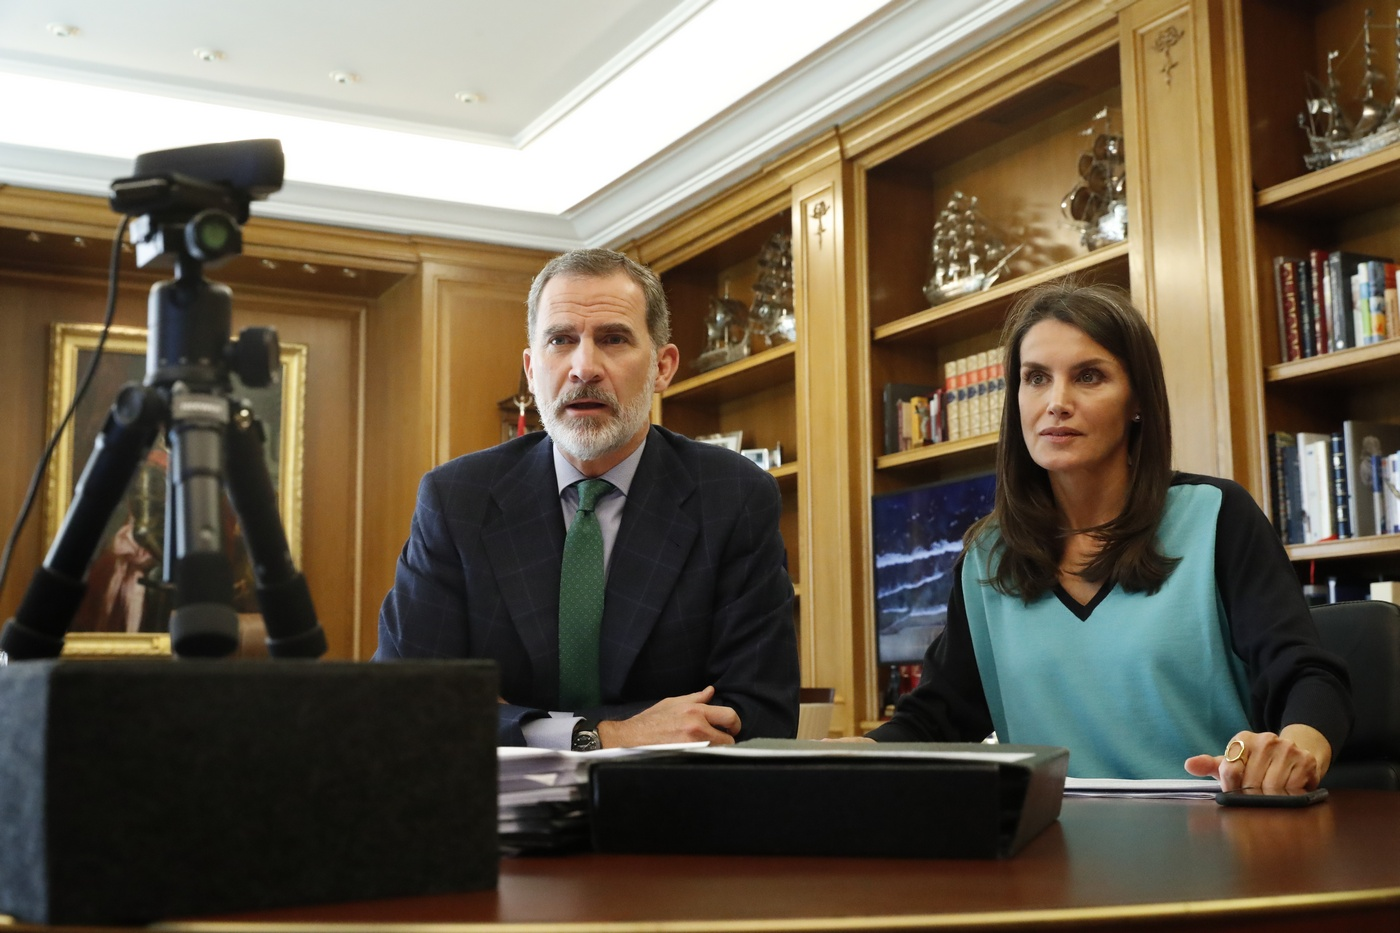 King Felipe and Queen Letizia talked to the taxi sector